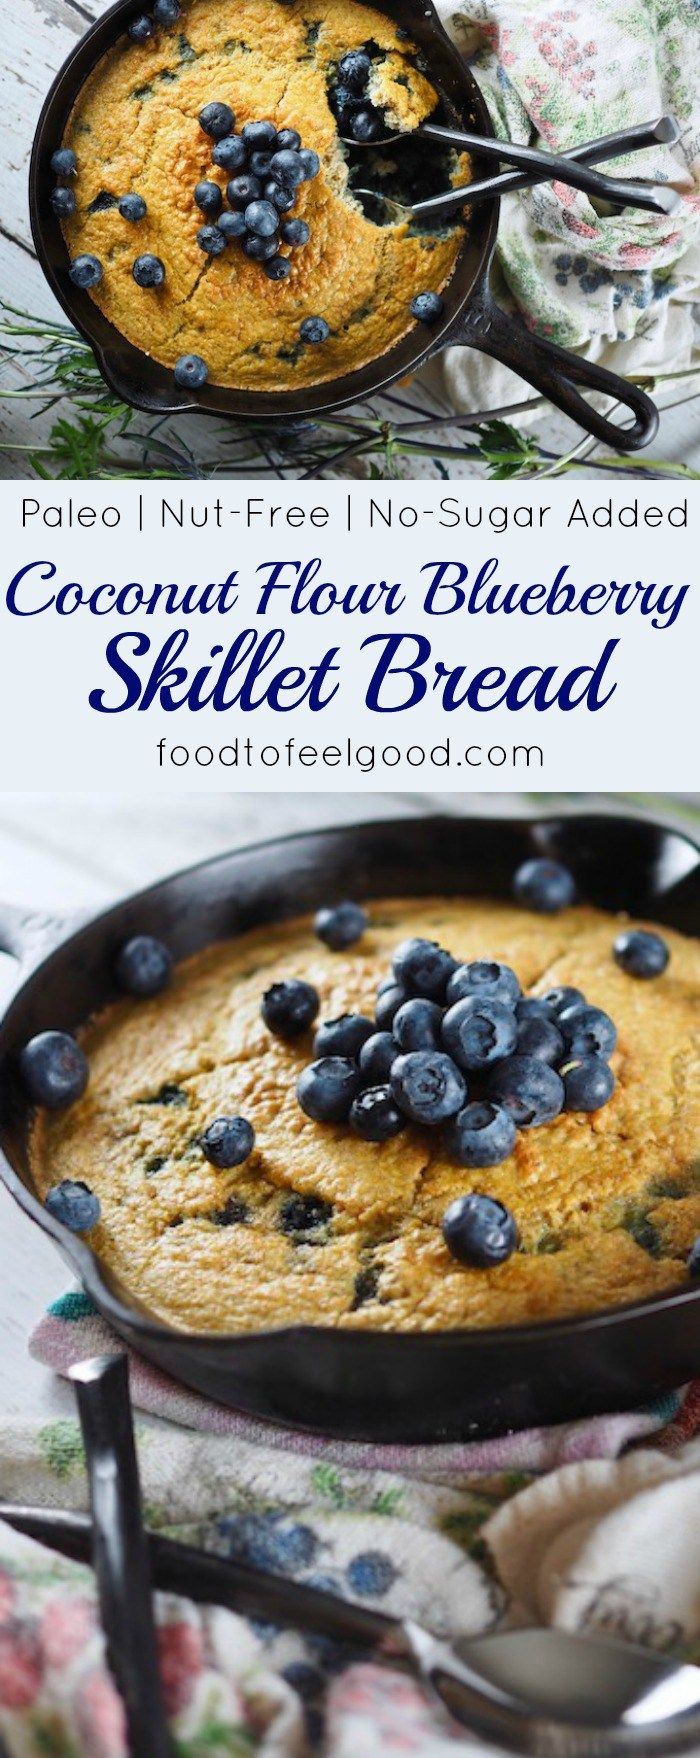 Healthy Paleo Coconut Flour Blueberry Skillet Bread   Keto-friendly, grain-free, gluten-free, dairy-free, sugar-free, yeast-free, high-protein, and low-carb! Super yummy and comforting on a cold morning, plus easy to make. #grainfree #healthybreakfast #paleo